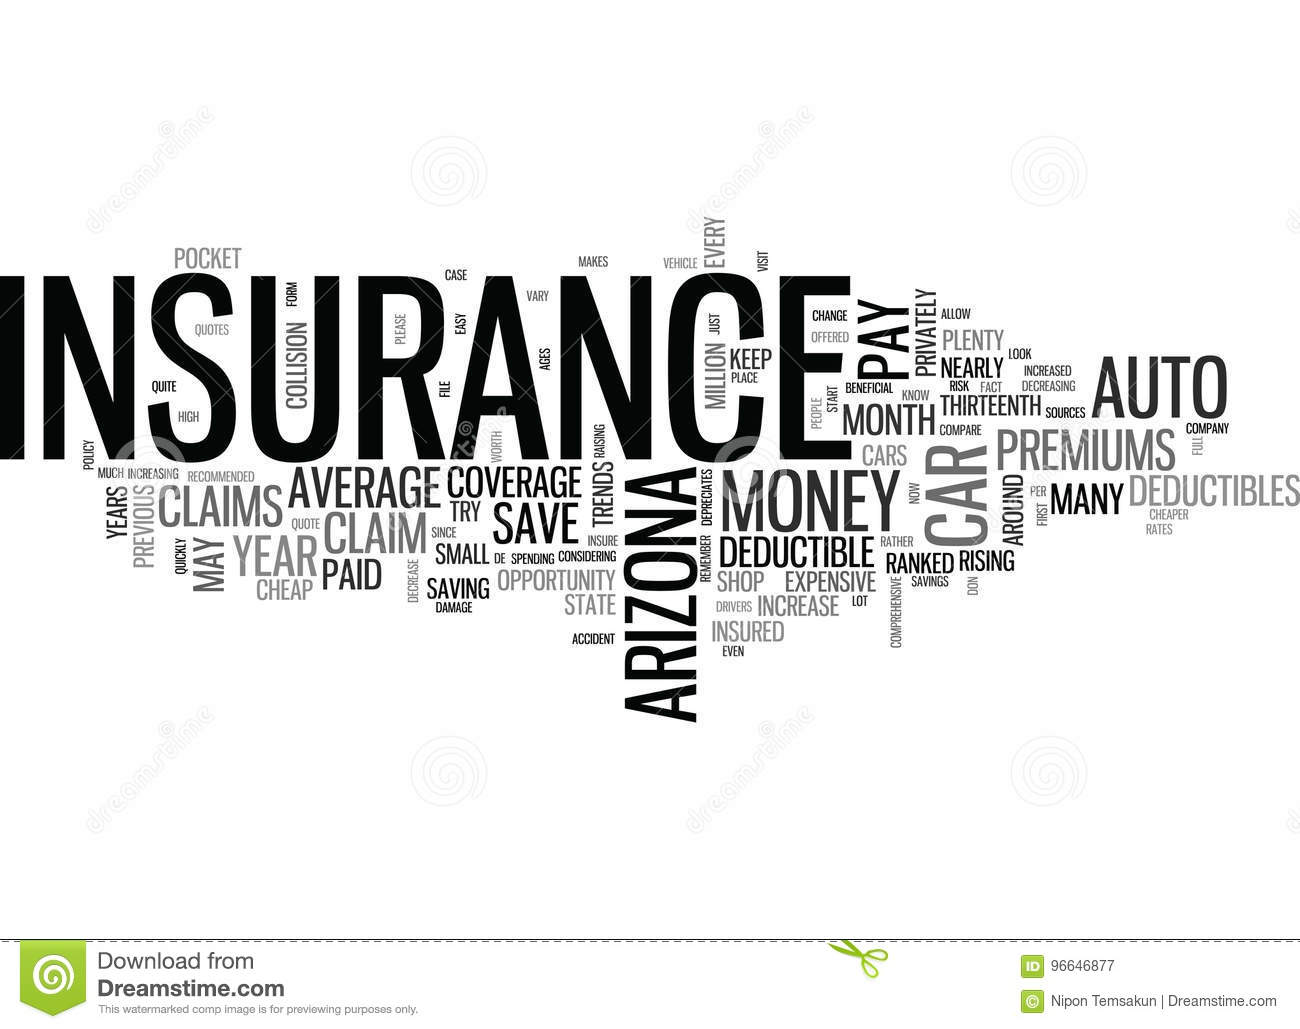 Best Arizona Car Insurance Rates 44billionlater